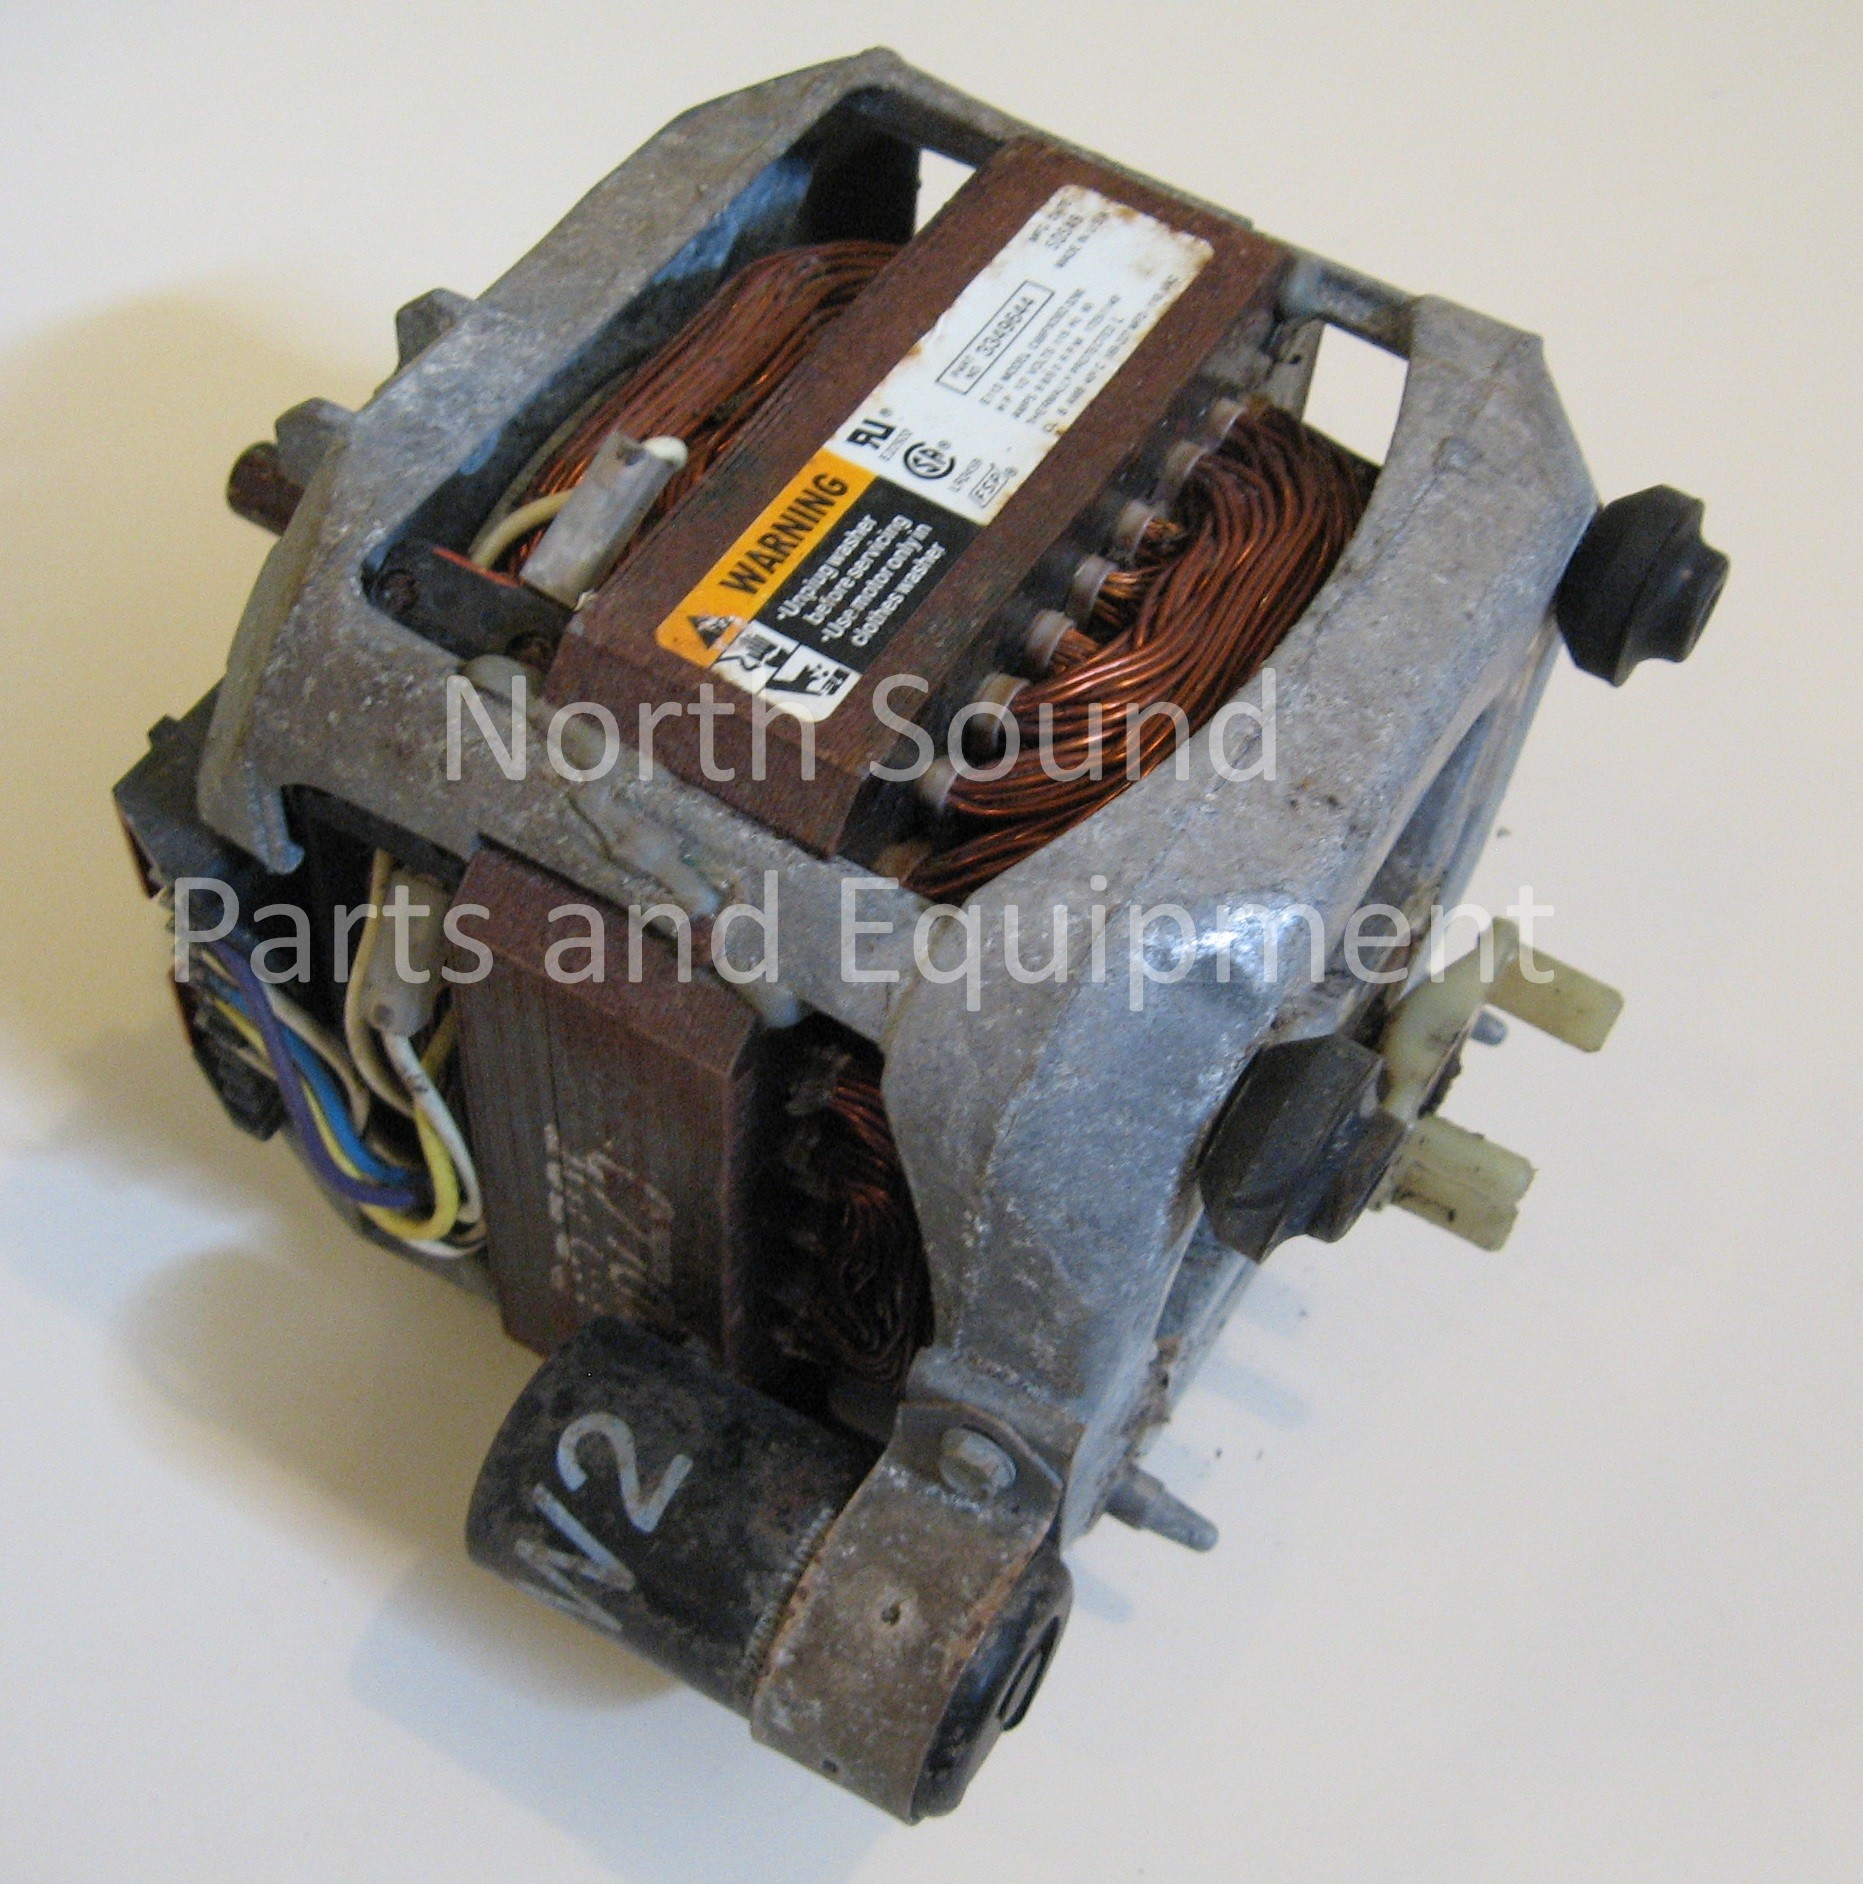 Kenmore whirlpool washer drive motor 3349644 389248 for Whirlpool washer motor price